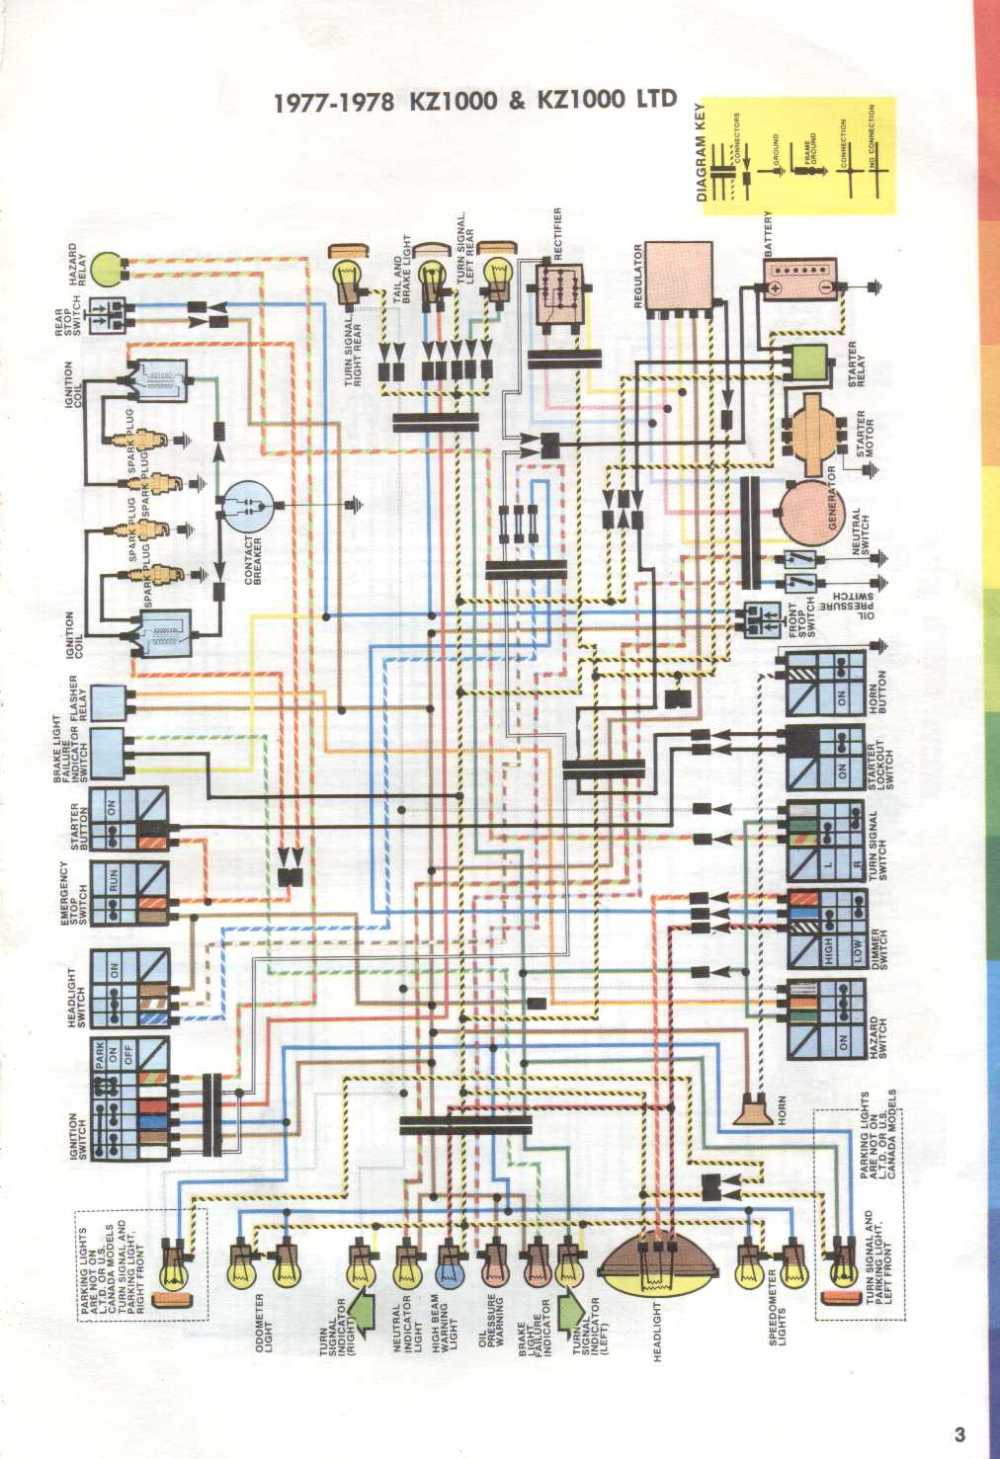 medium resolution of wiring diagram for 1977 1978 kawasaki kz1000 and kz1000ltd evan rh cycles evanfell com kawasaki electrical